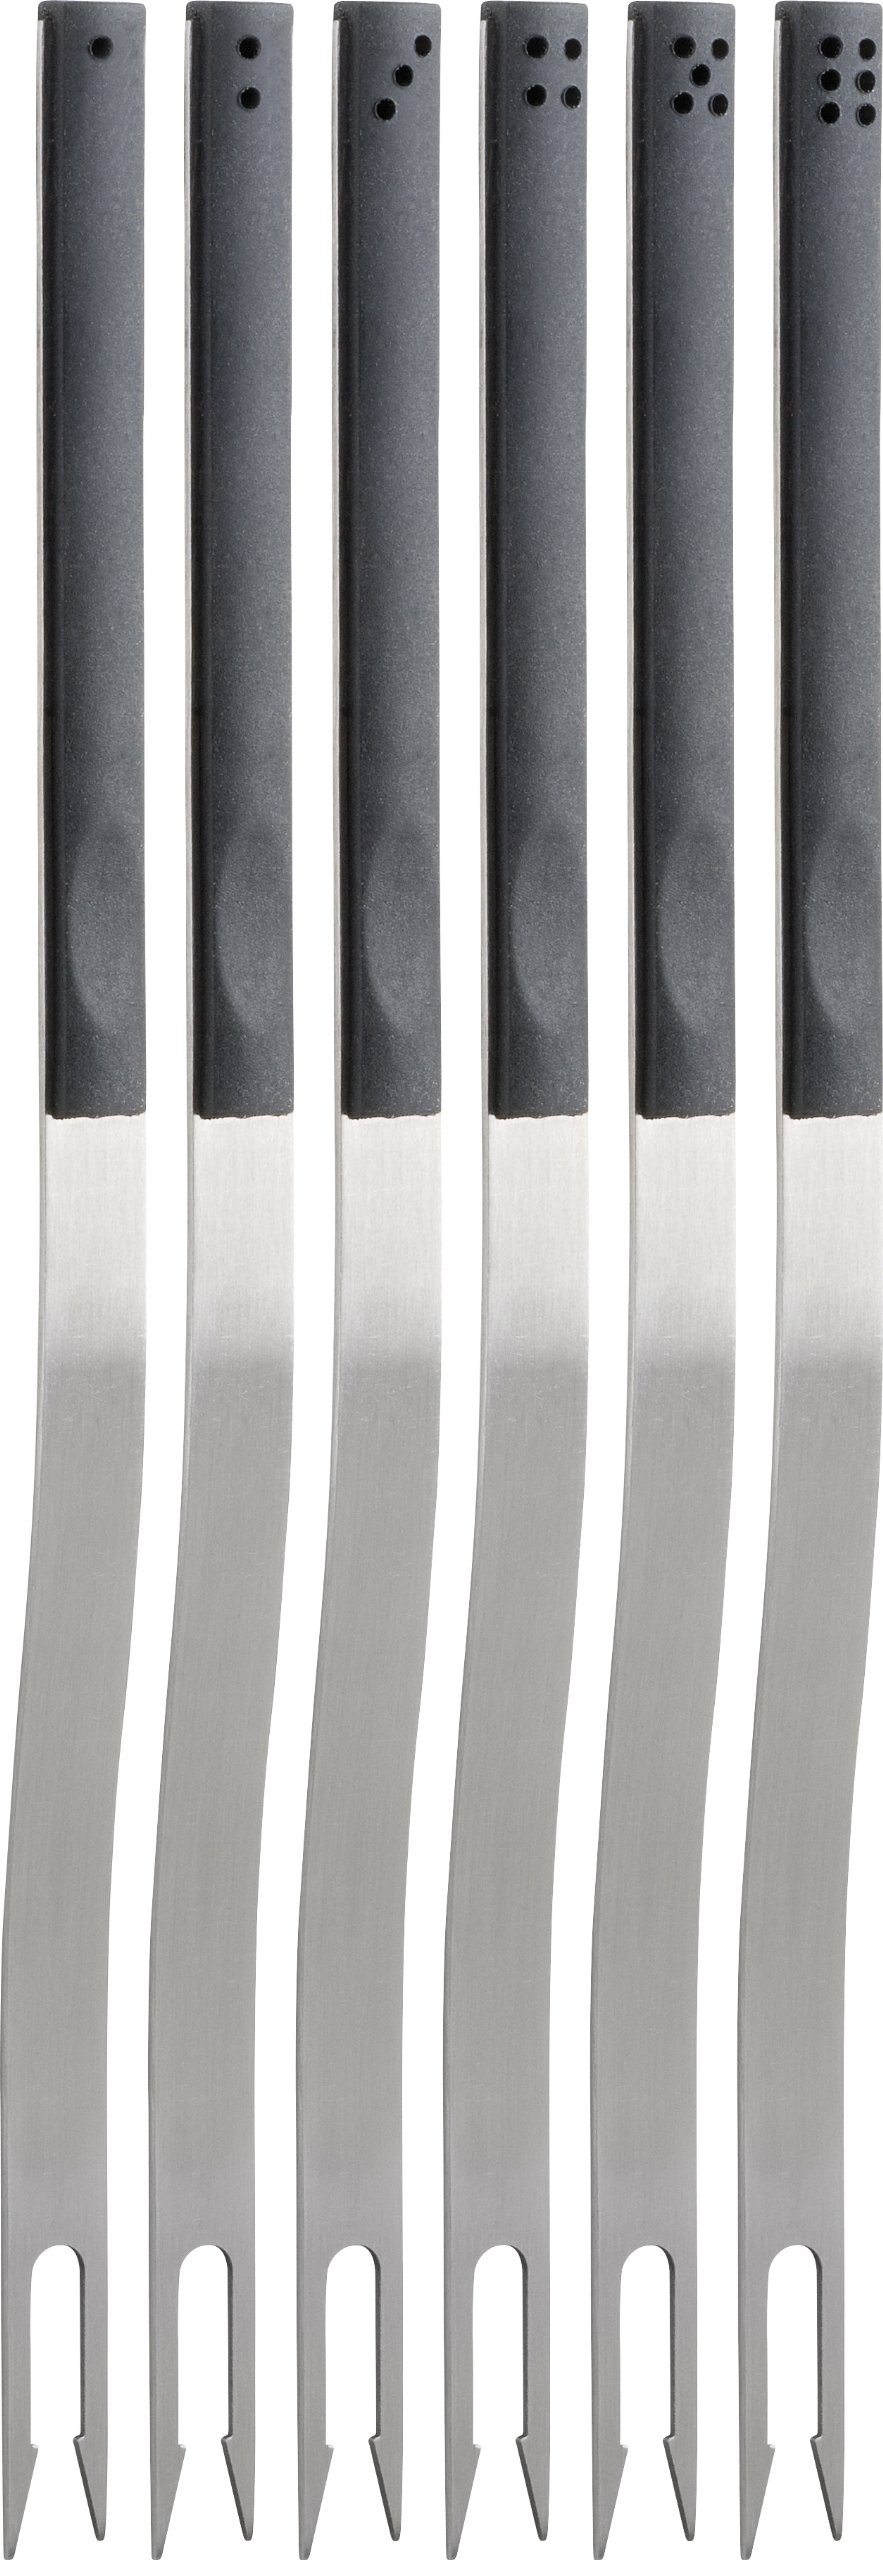 Trudeau Domino Fondue Forks, Set of 6